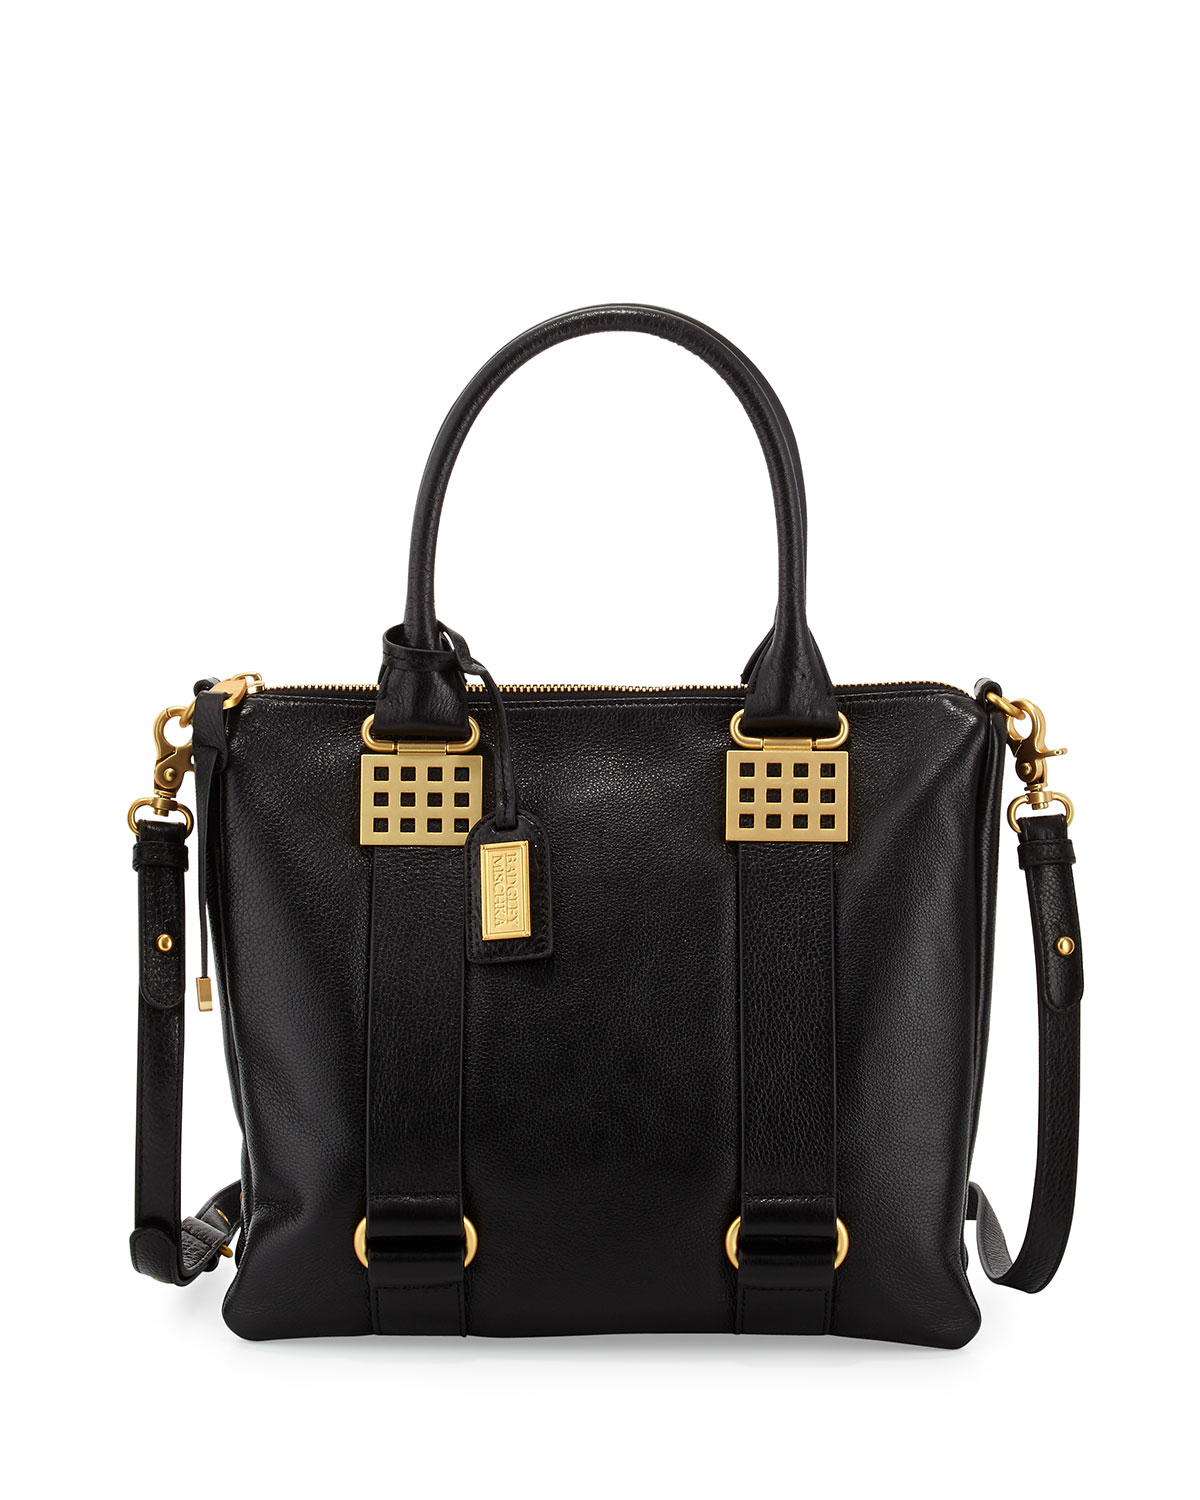 Badgley mischka Ally Leather Tote Bag in Black